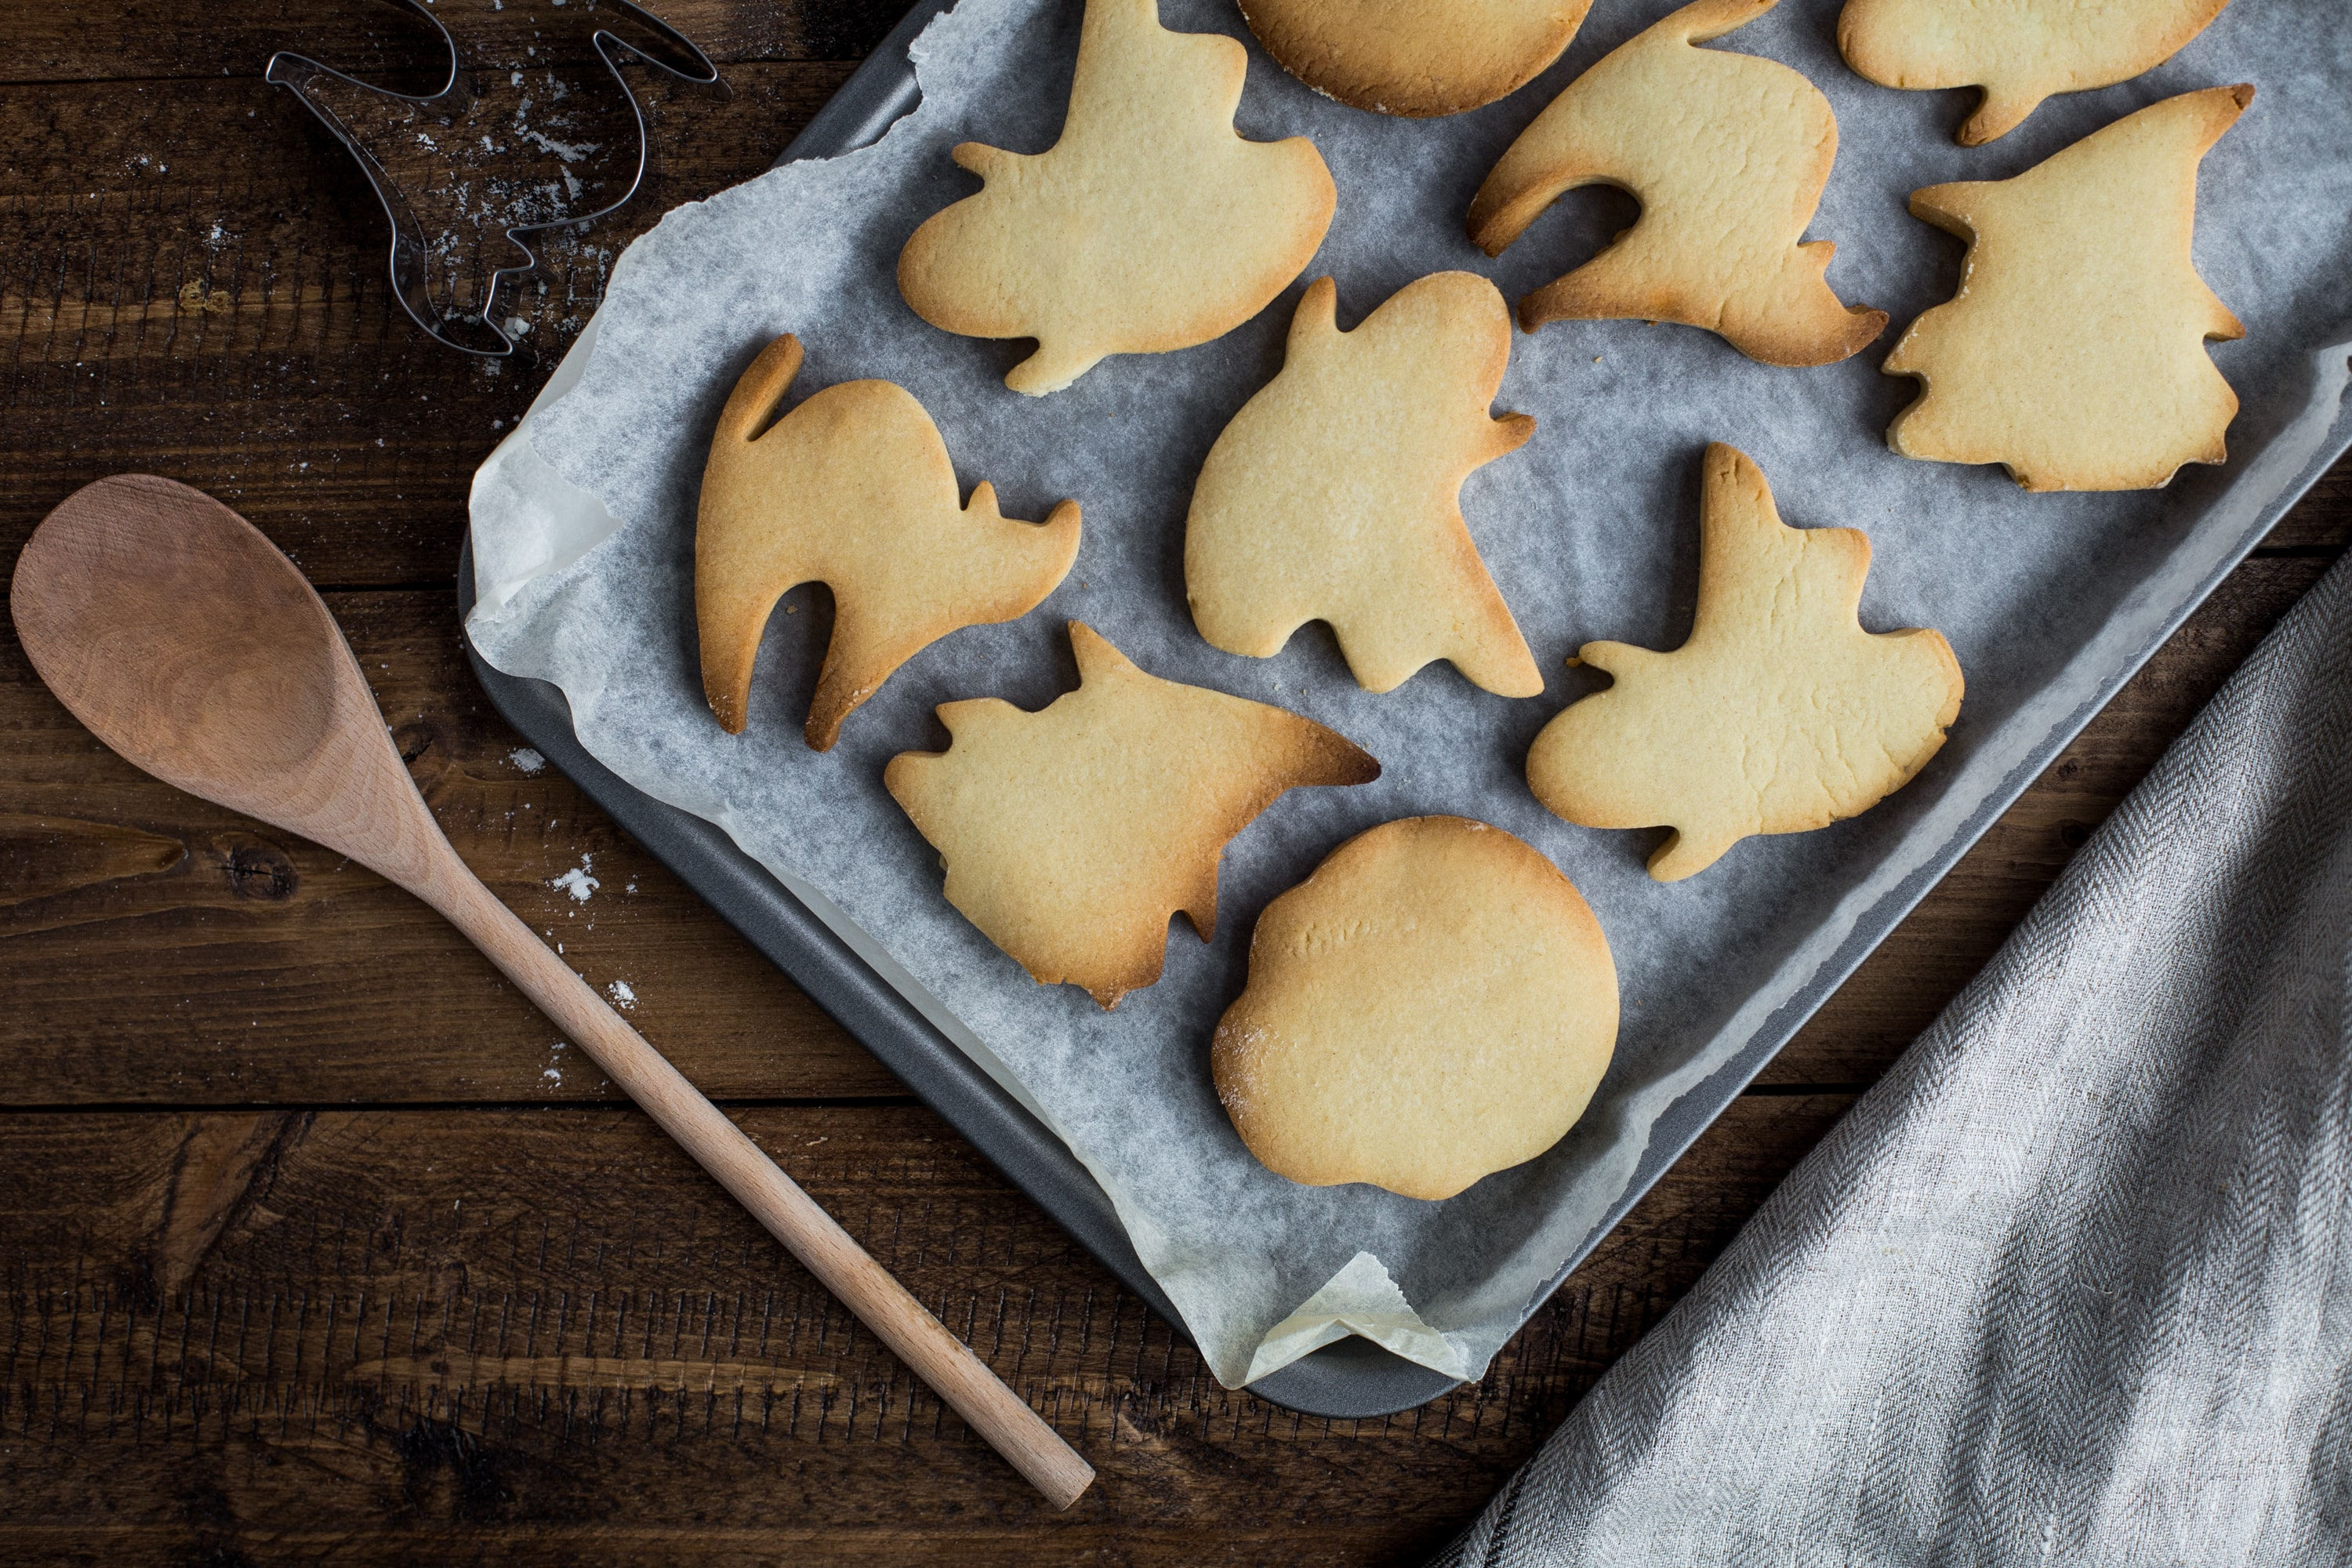 An overhead shot of a tray of baked cookies in the shape of cats, ghosts and witches